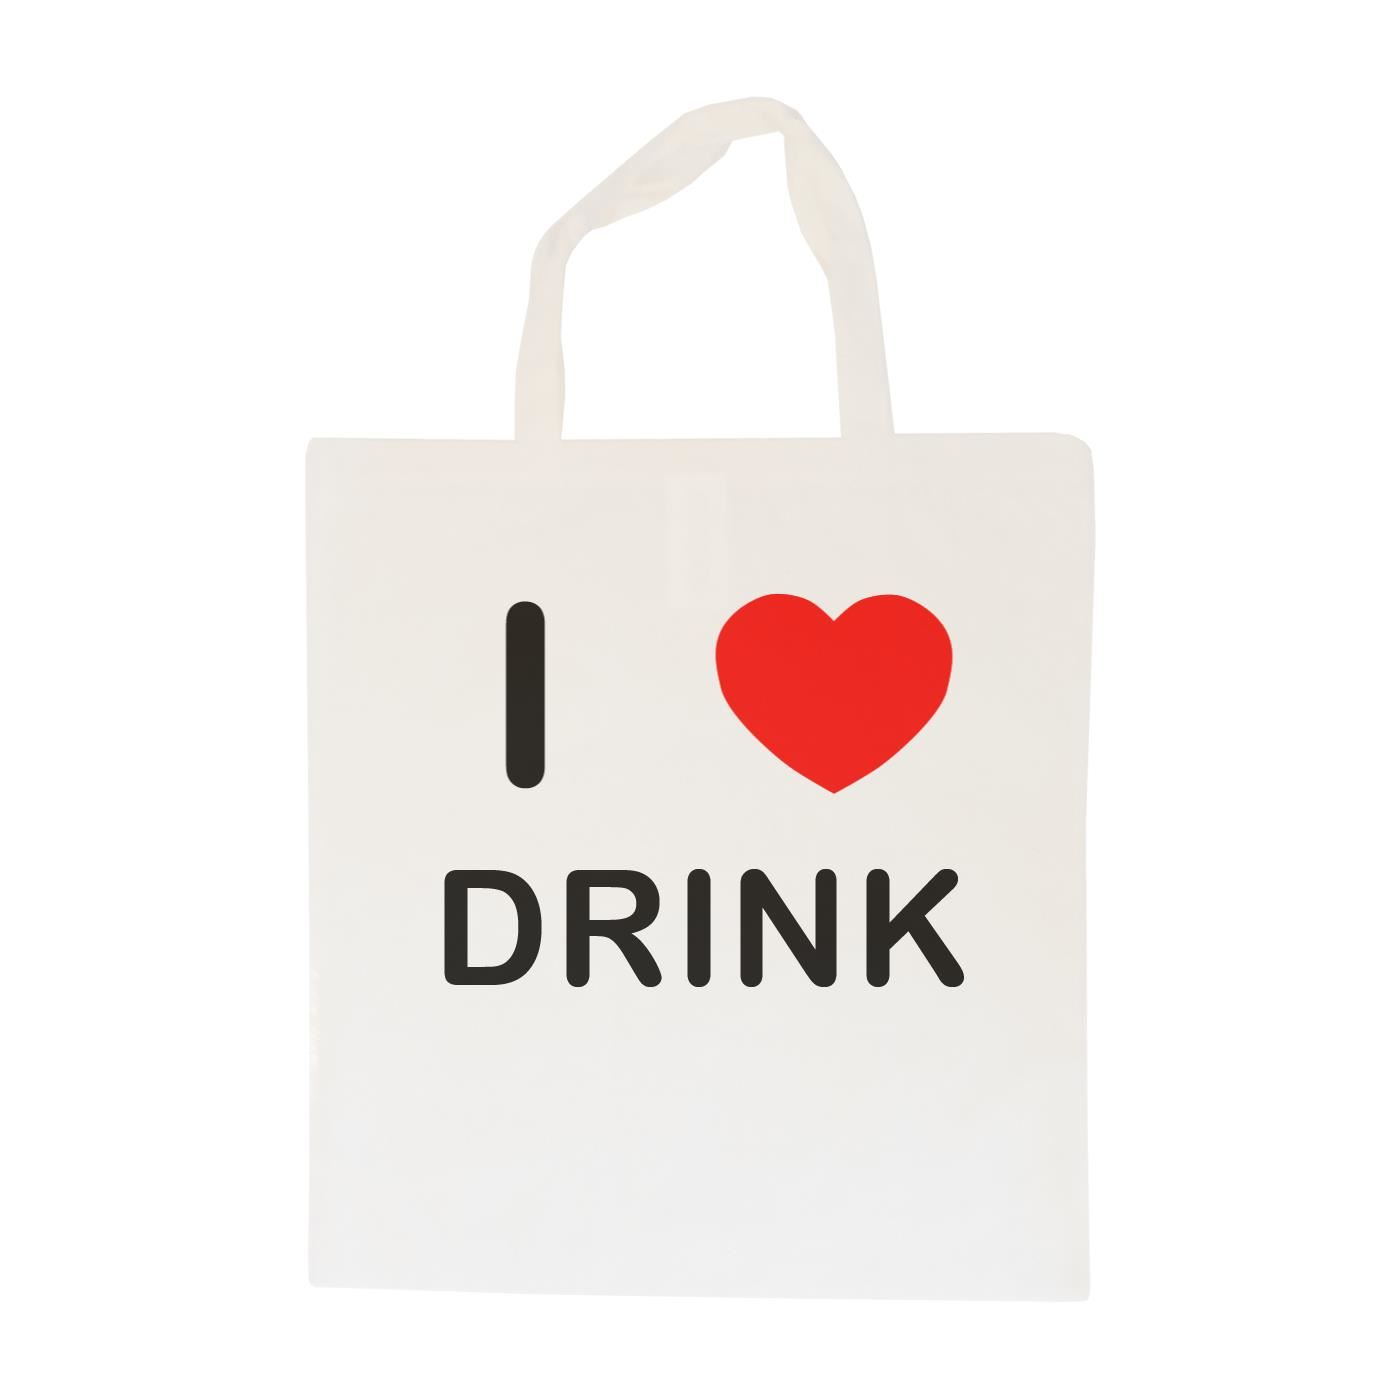 I Love Drink - Cotton Bag | Size choice Tote, Shopper or Sling